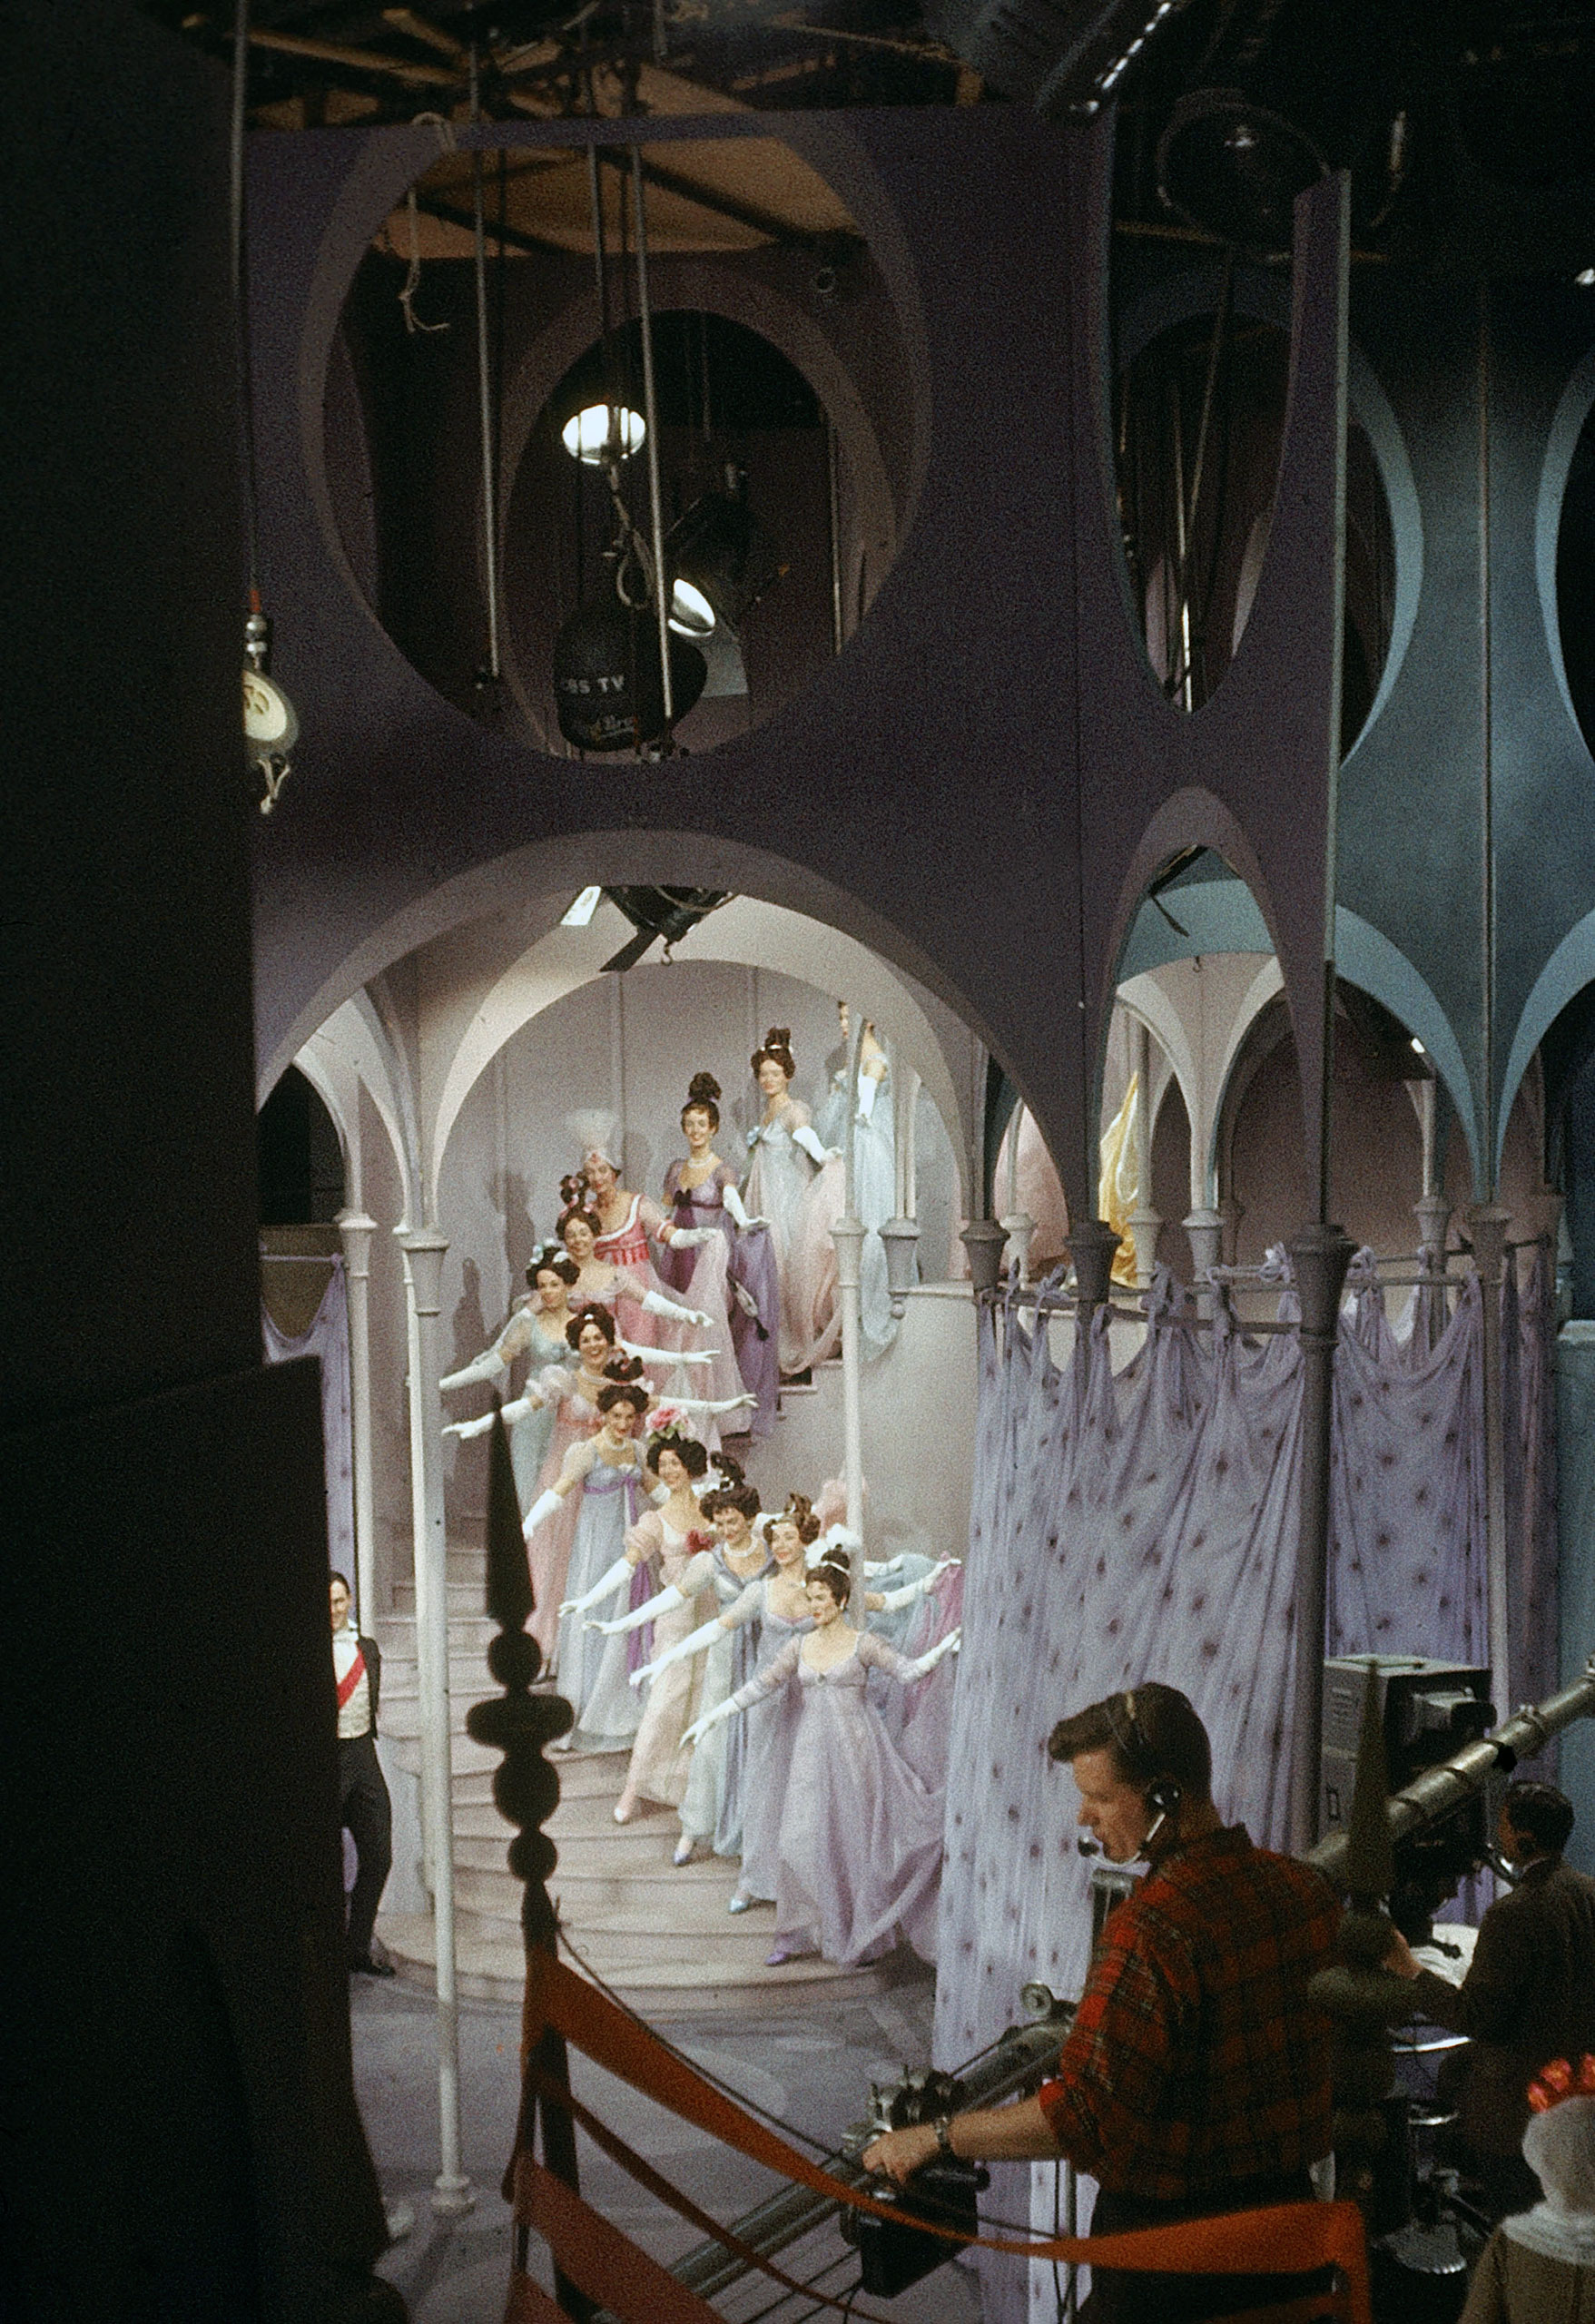 <b>Caption from LIFE.</b> On royal stairway dancers wait for grand waltz while a technician listens for cue to start.